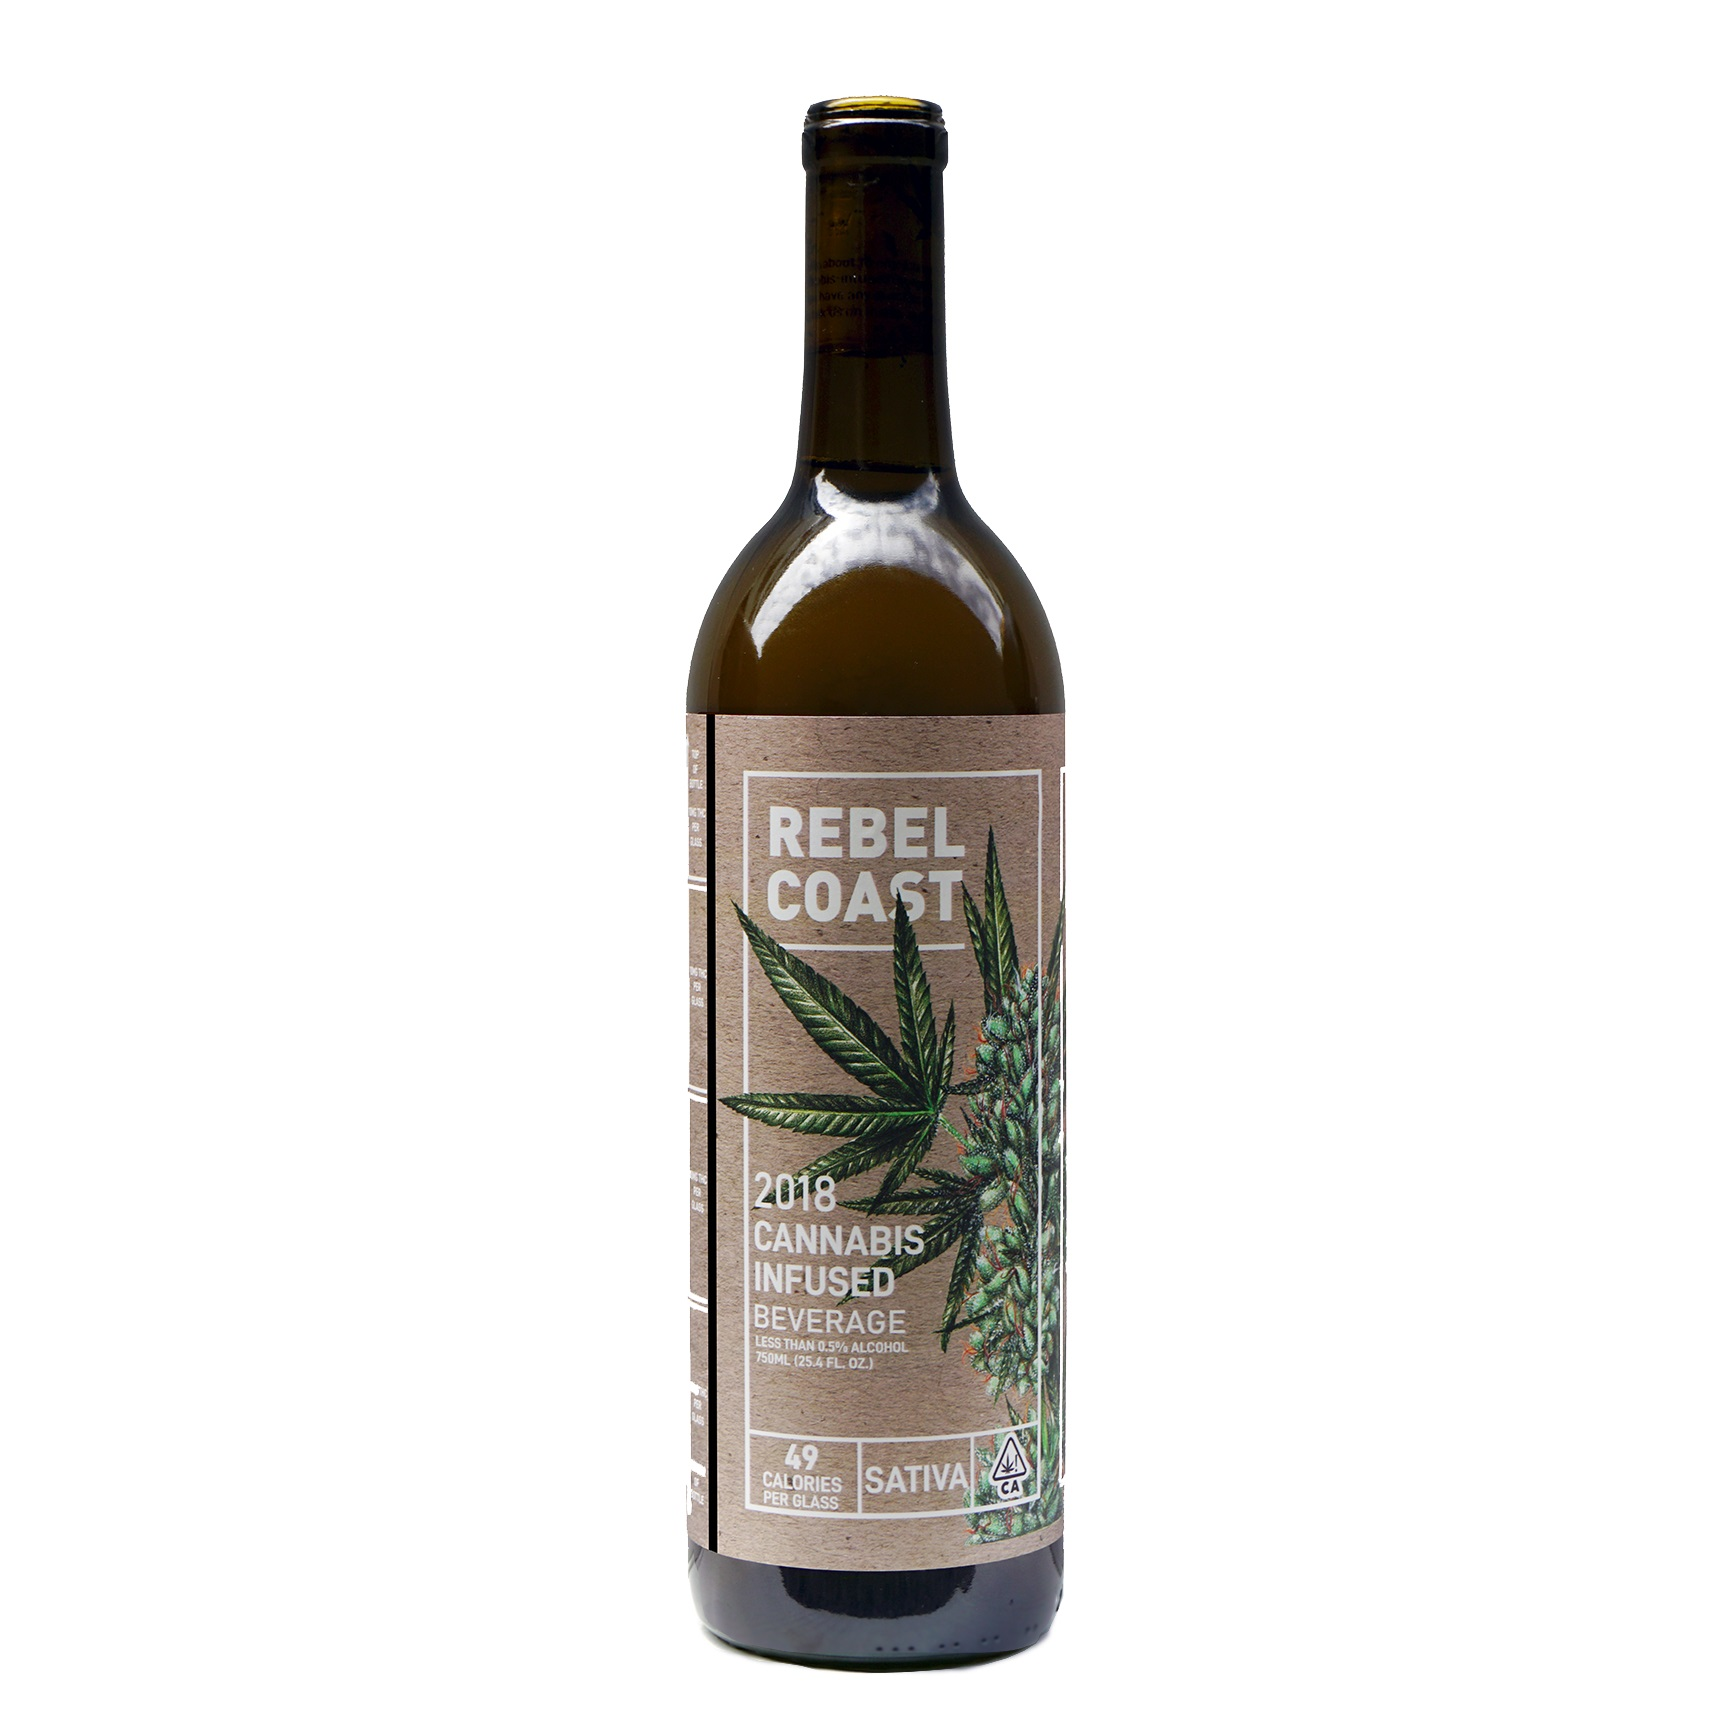 Cannabis Beverages Market remarkable sight to see Leaders like- Heineken, The Alkaline Water Company, COALITION BREWING, Coalition Brewing